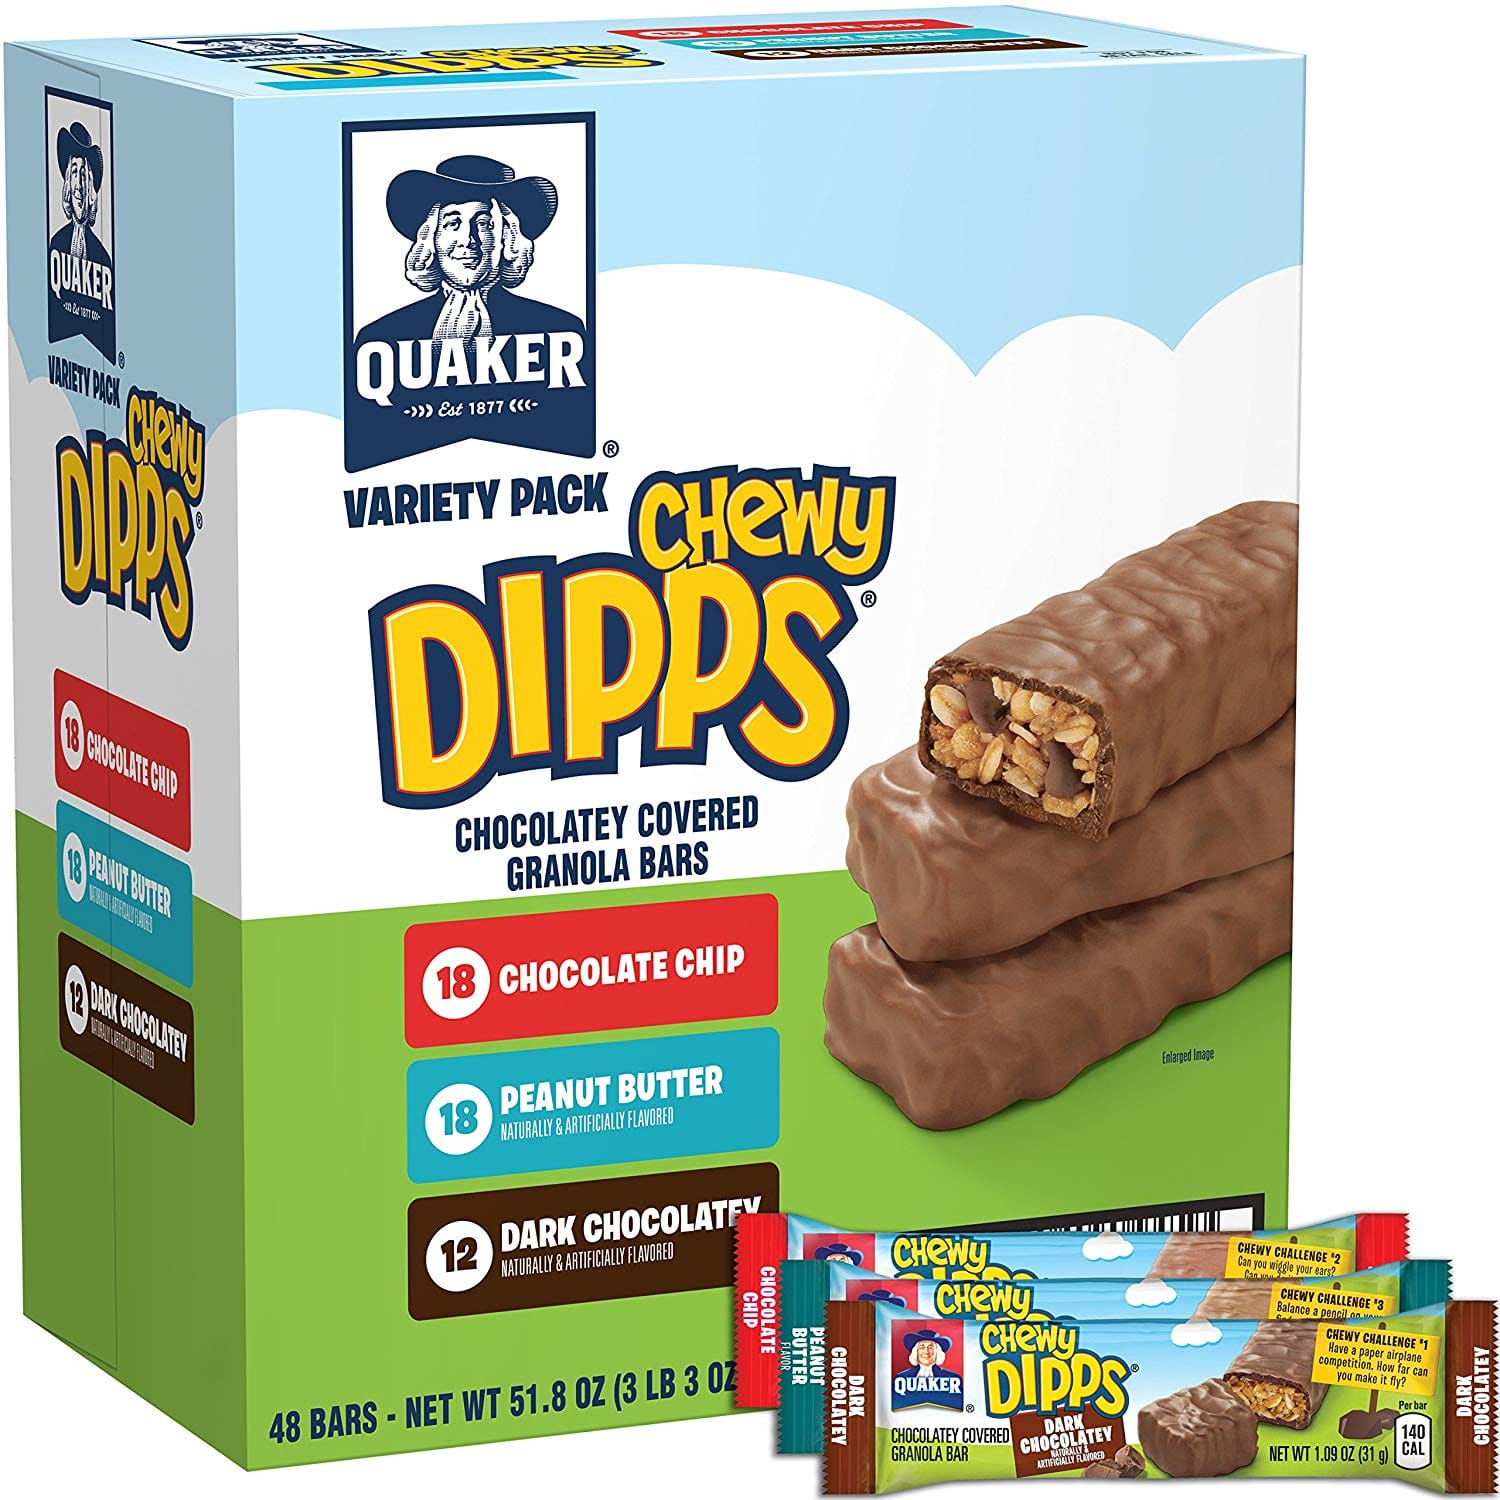 Quaker Chewy Dipps Variety Pack, 48 Count for $8.39 or lower at amazon.com